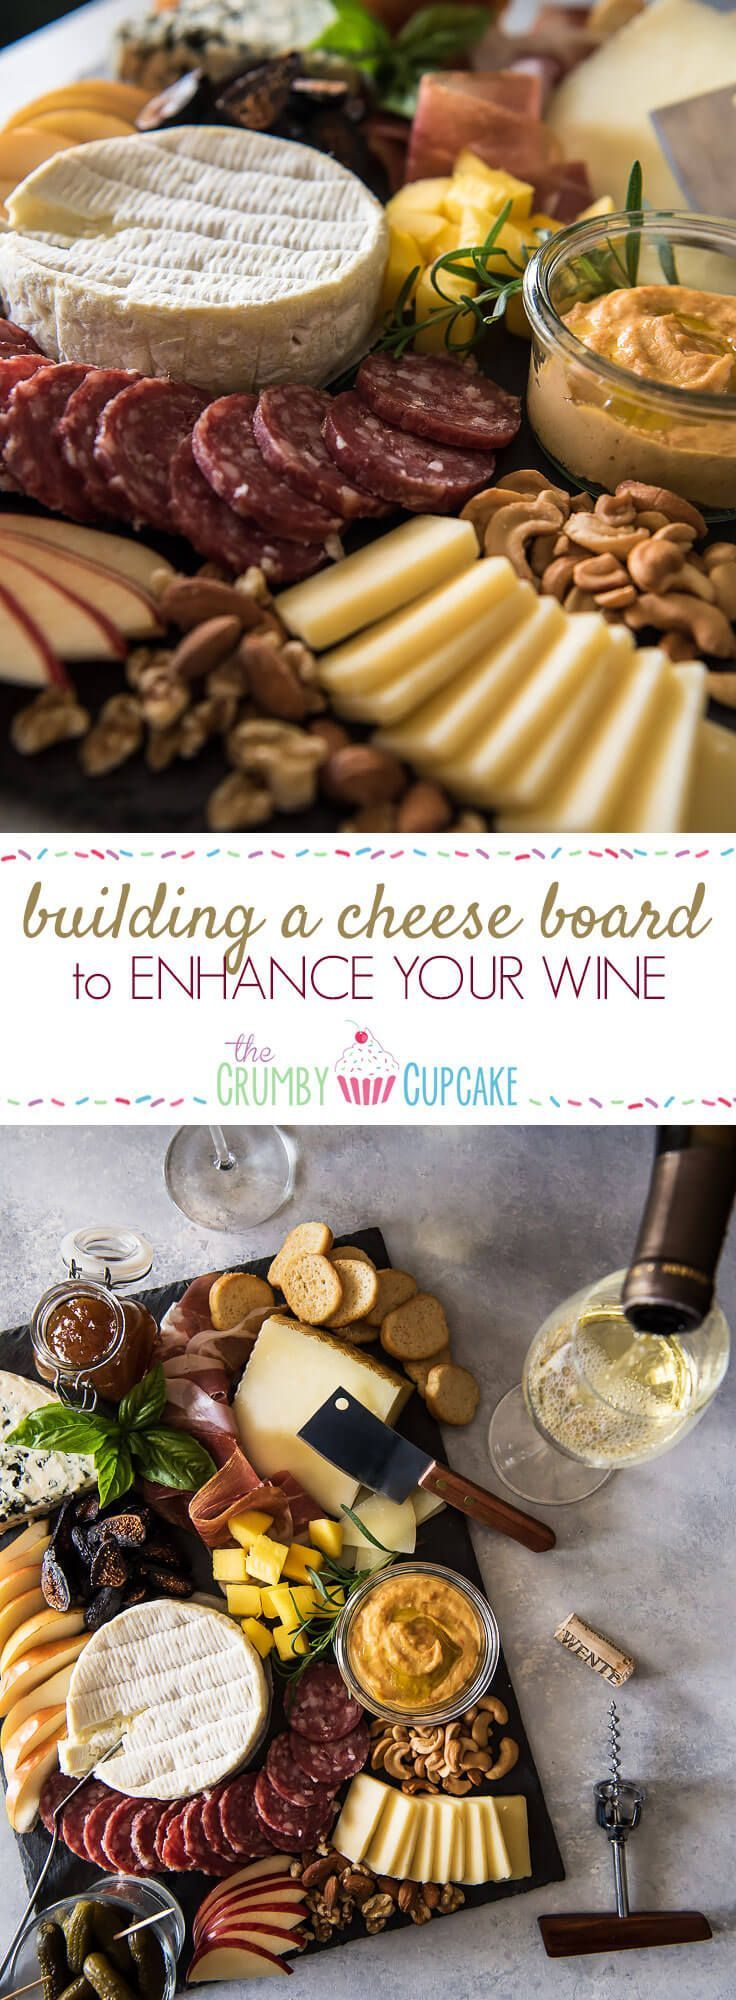 There are so many great pairs in the world of food, but cheese and wine is the best of all to a foodie! Anyone can learn how to build a cheese board, but knowing how to pair each element with your favorite wine is an art. Today, we explore the options that go beautifully with a toasty oak Chardonnay.